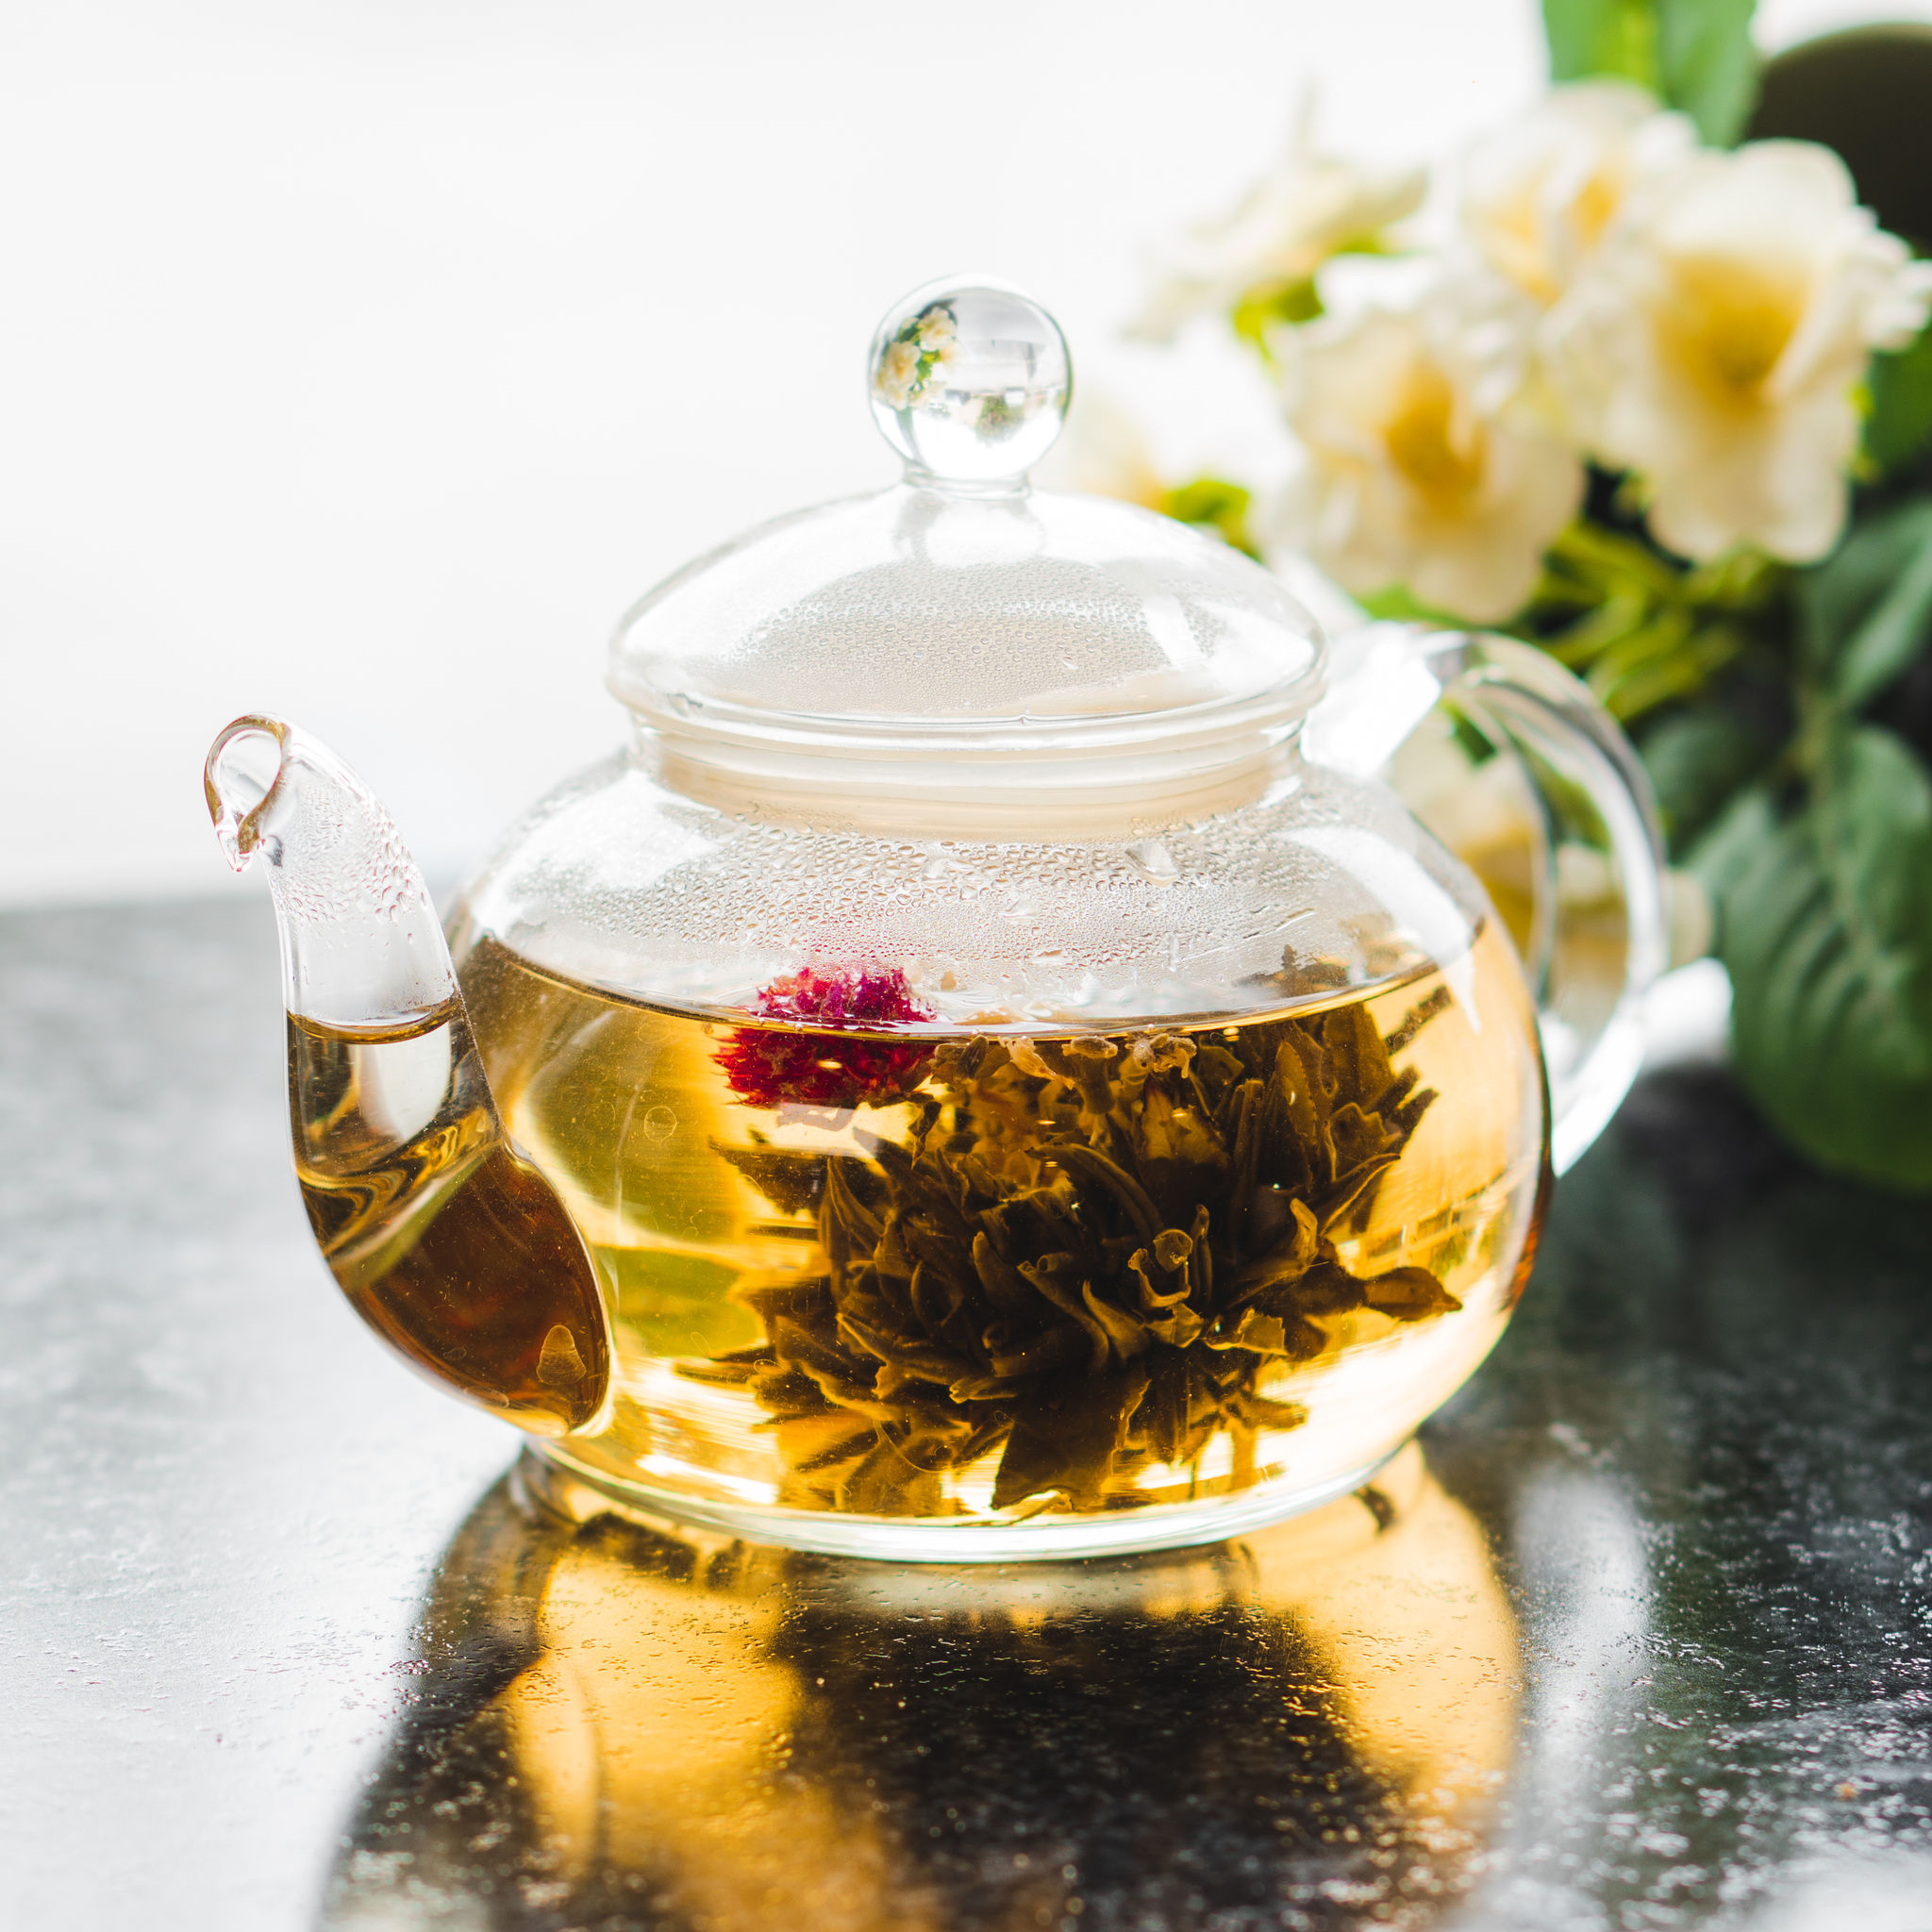 Blooming Tea What It Is And Why You Will Love It